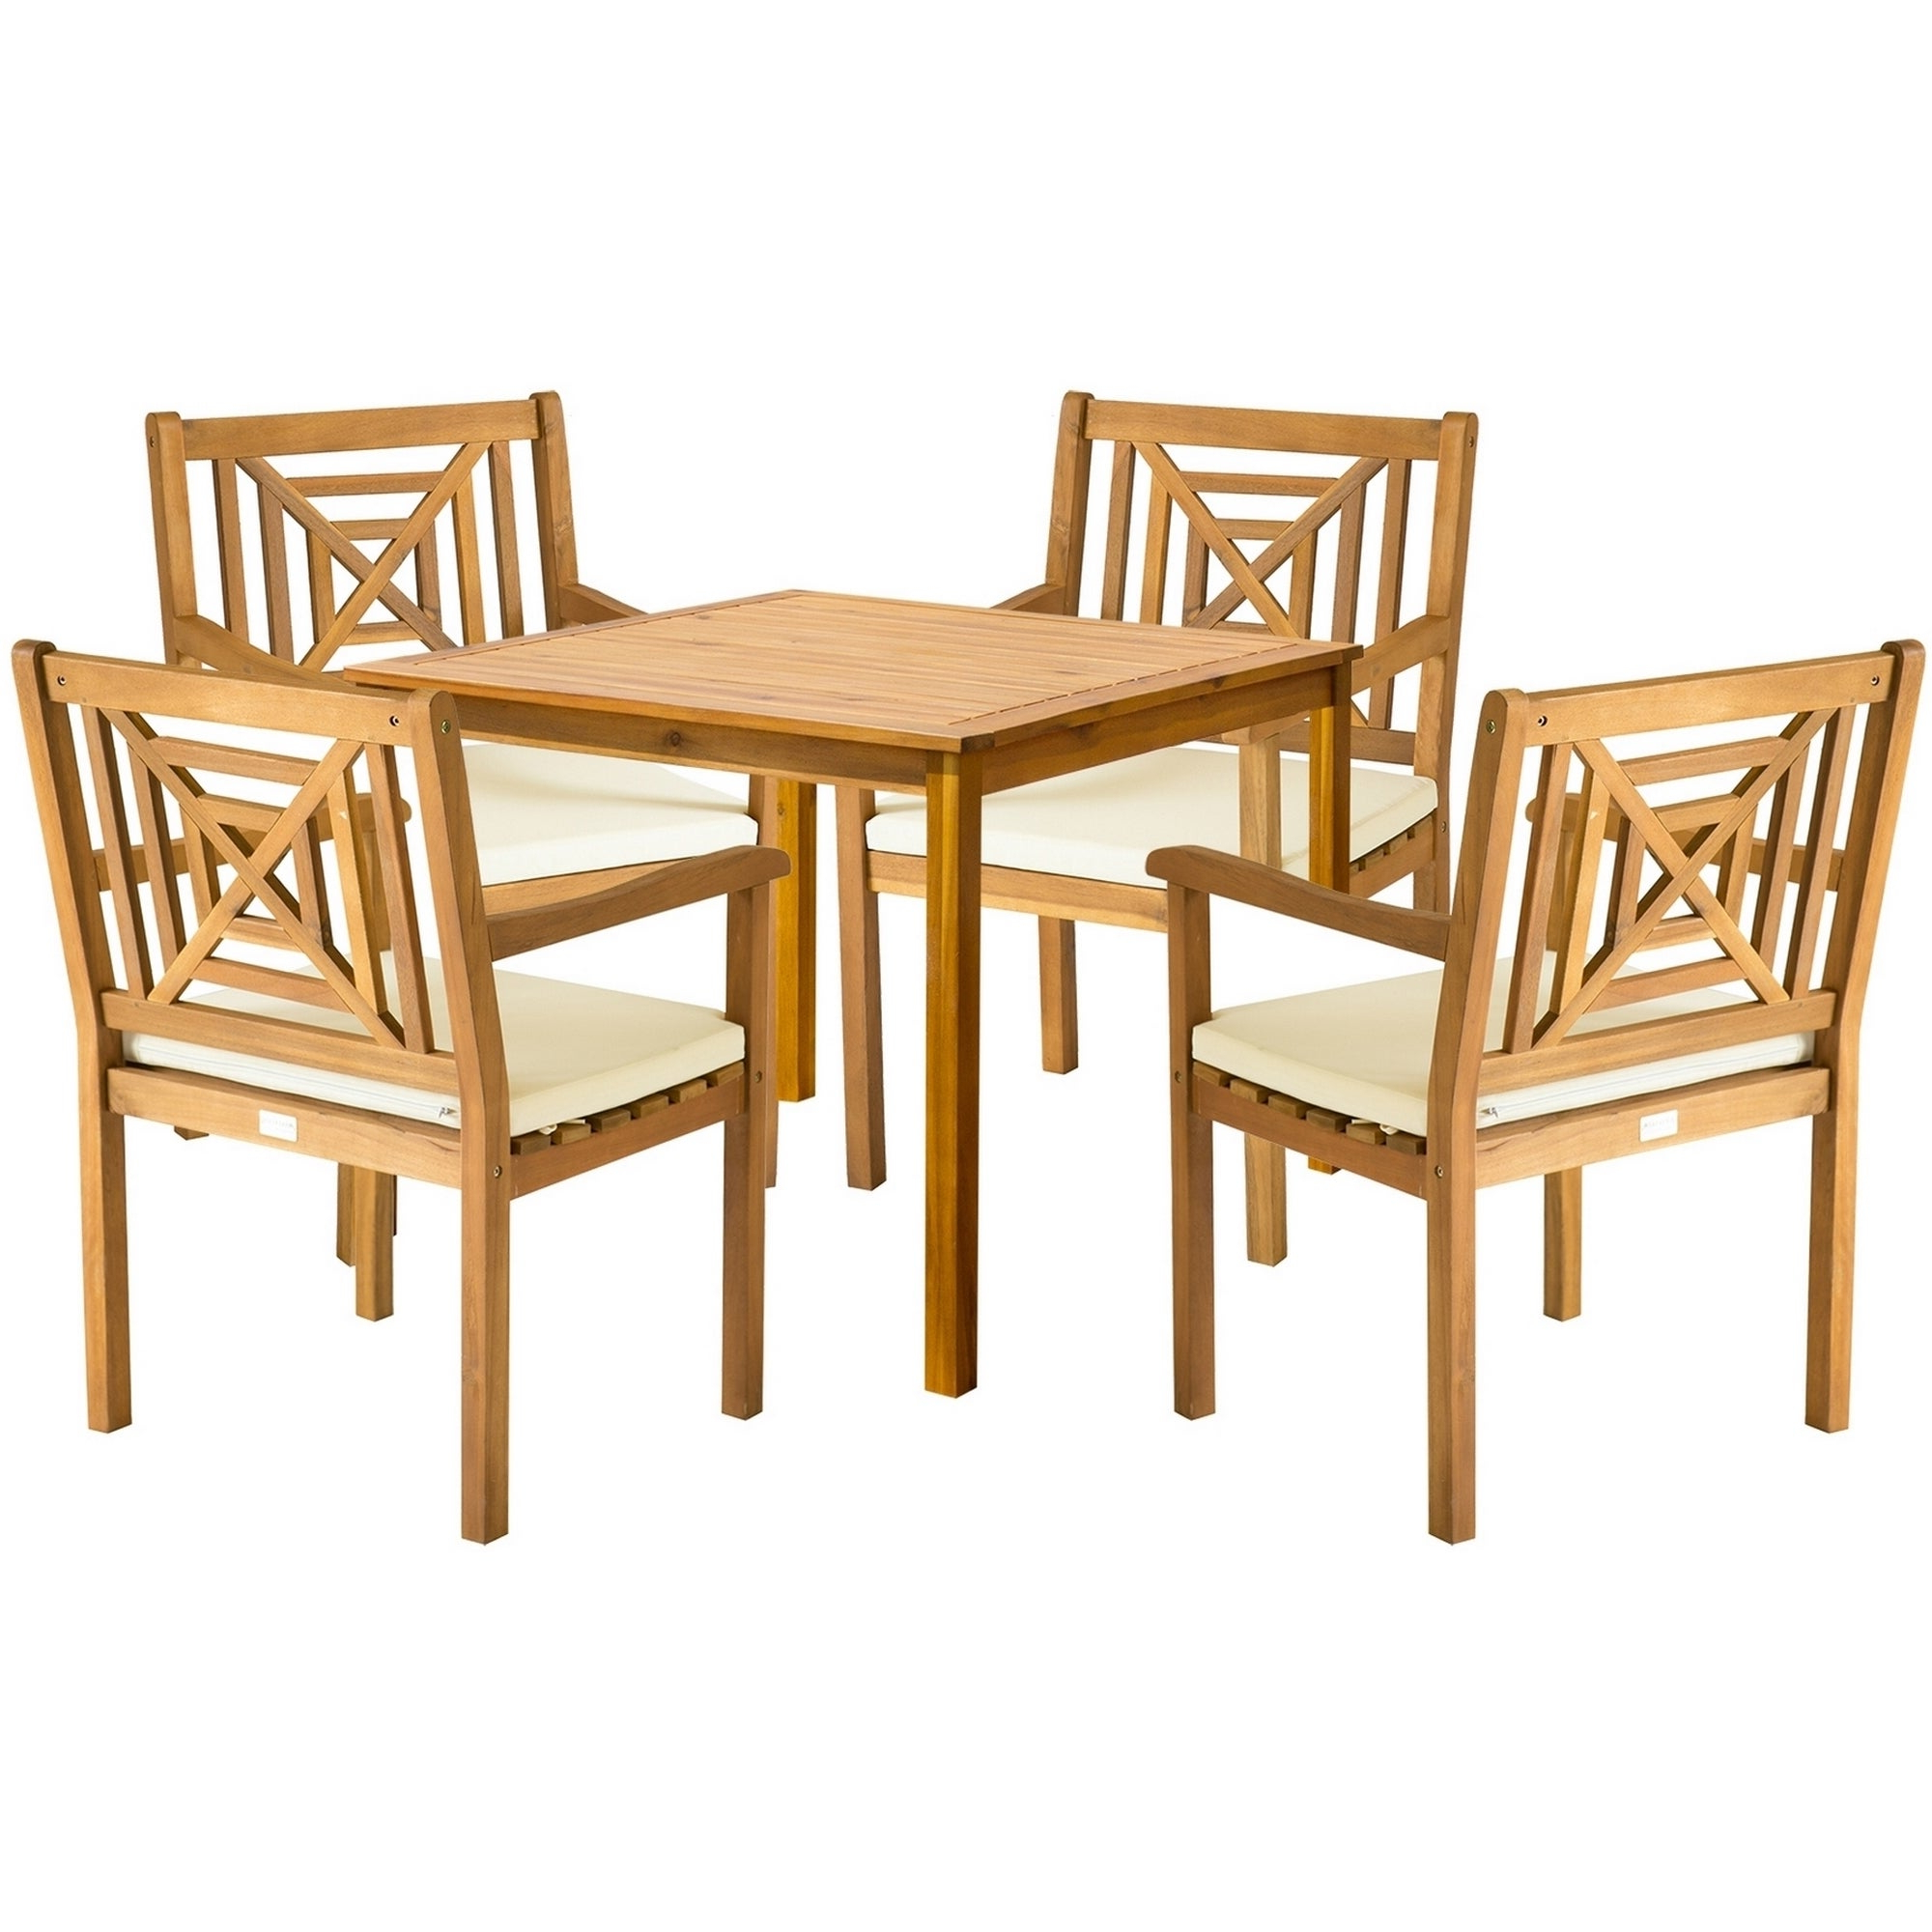 Newest Delmar 5 Piece Dining Sets Intended For Safavieh Outdoor Living Del Mar Brown Acacia Wood 5 Piece Beige Cushion Dining Set (View 18 of 20)